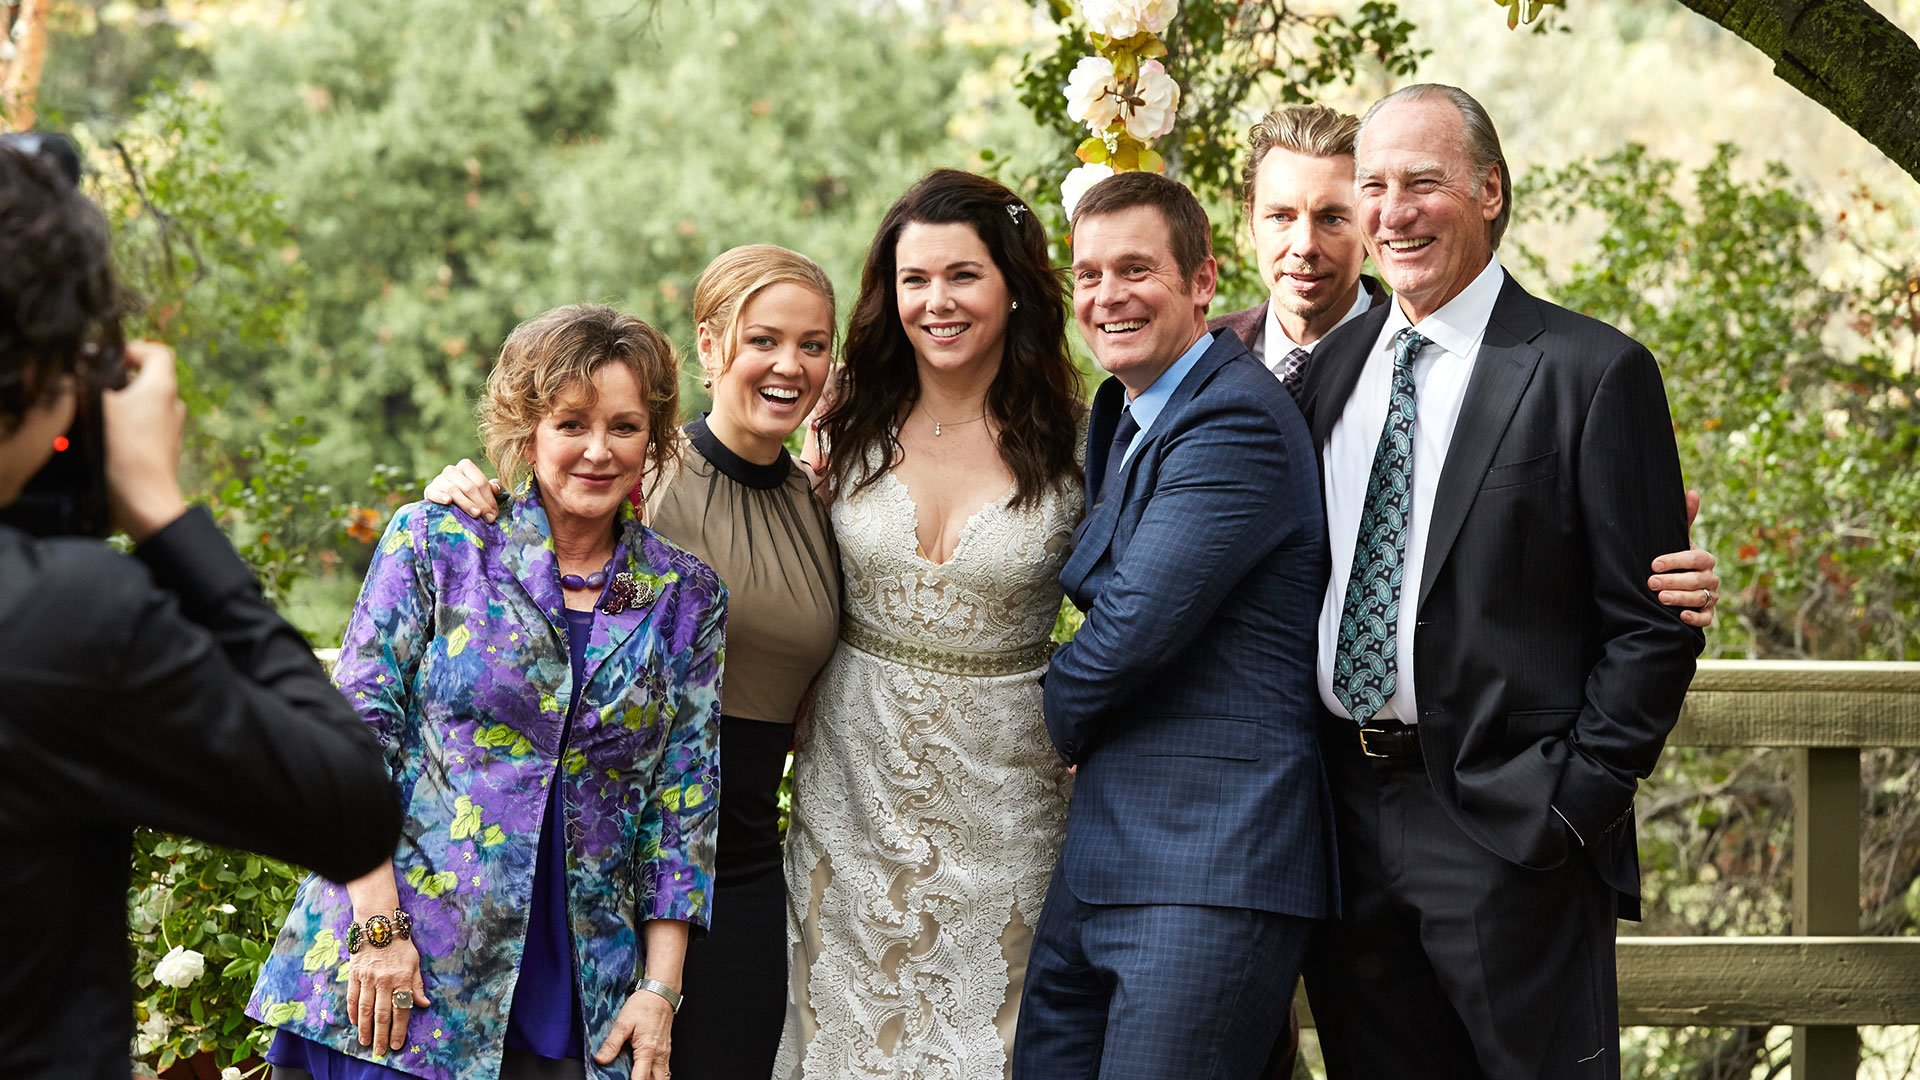 Parenthood - 06x13 - May God Bless You and Keep You Always